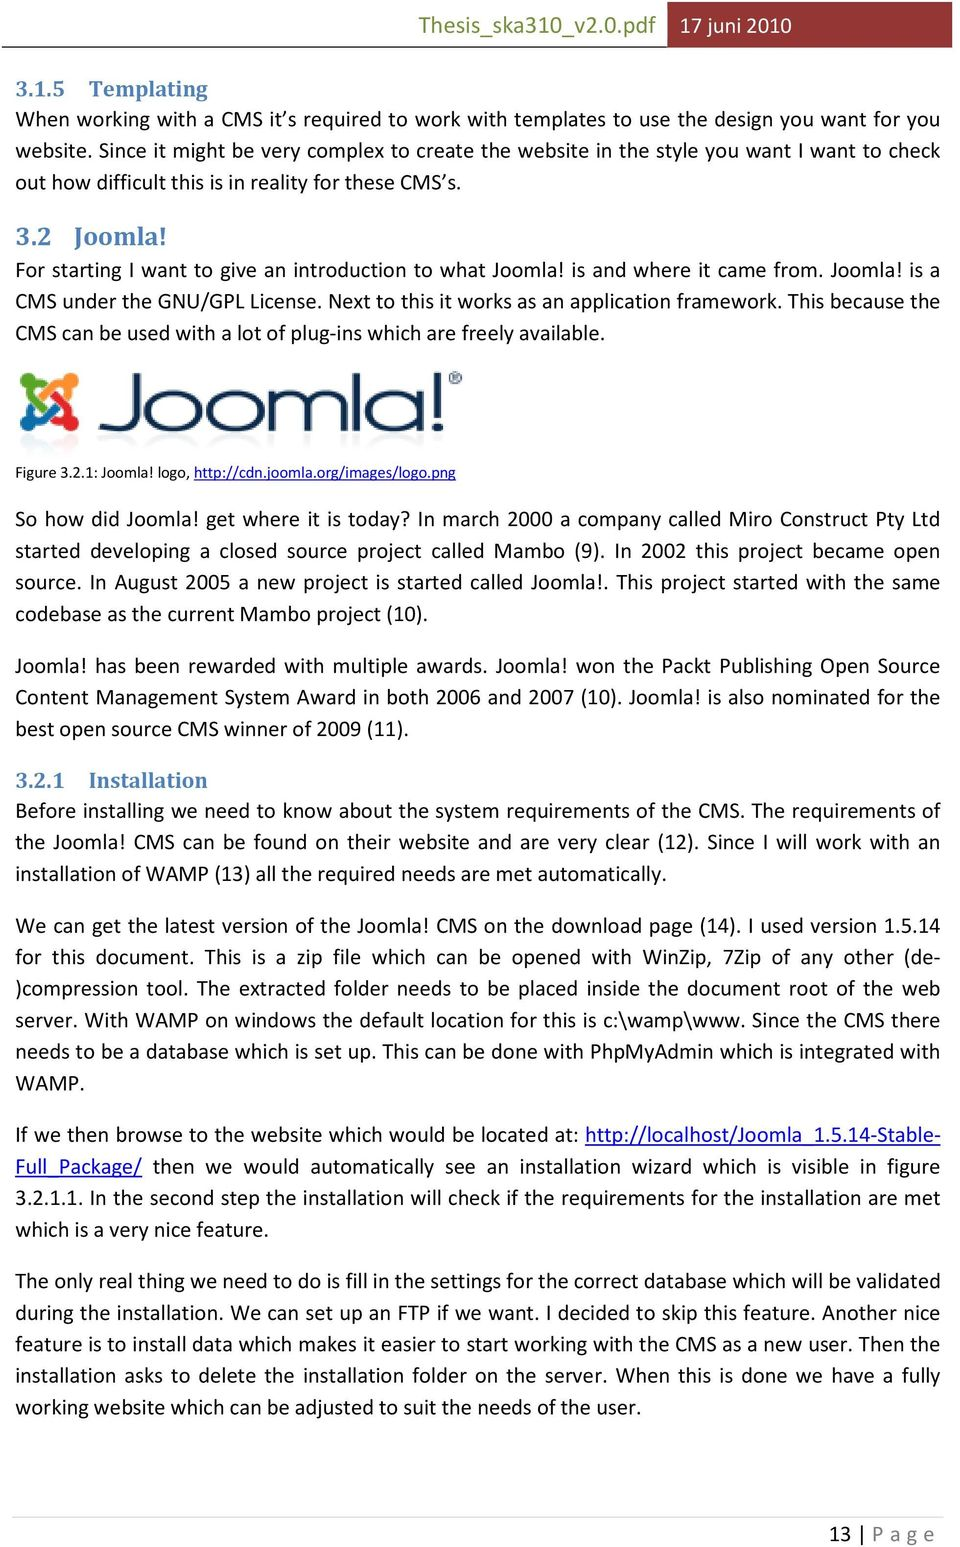 For starting I want to give an introduction to what Joomla! is and where it came from. Joomla! is a CMS under the GNU/GPL License. Next to this it works as an application framework.